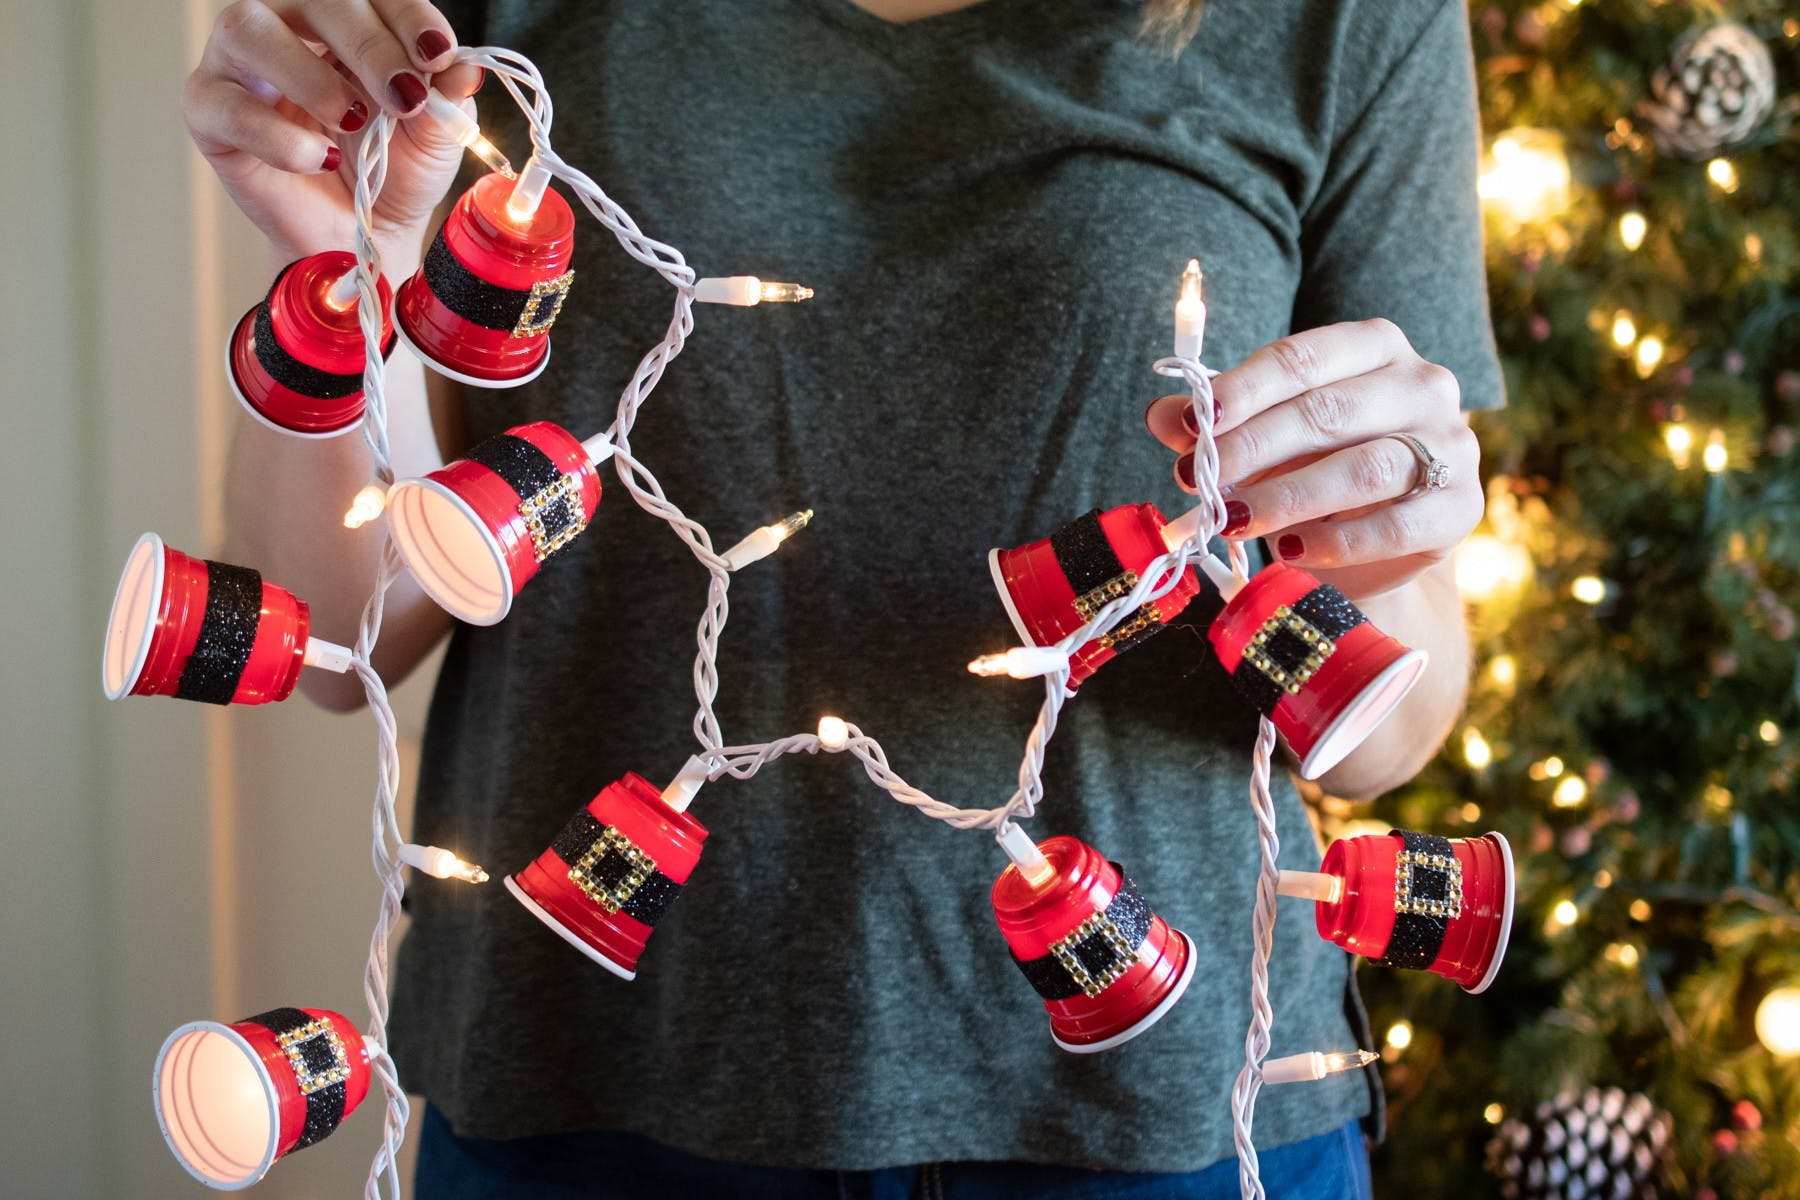 15 Dollar Store Christmas Diy Projects Anyone Can Do The Krazy Coupon Lady